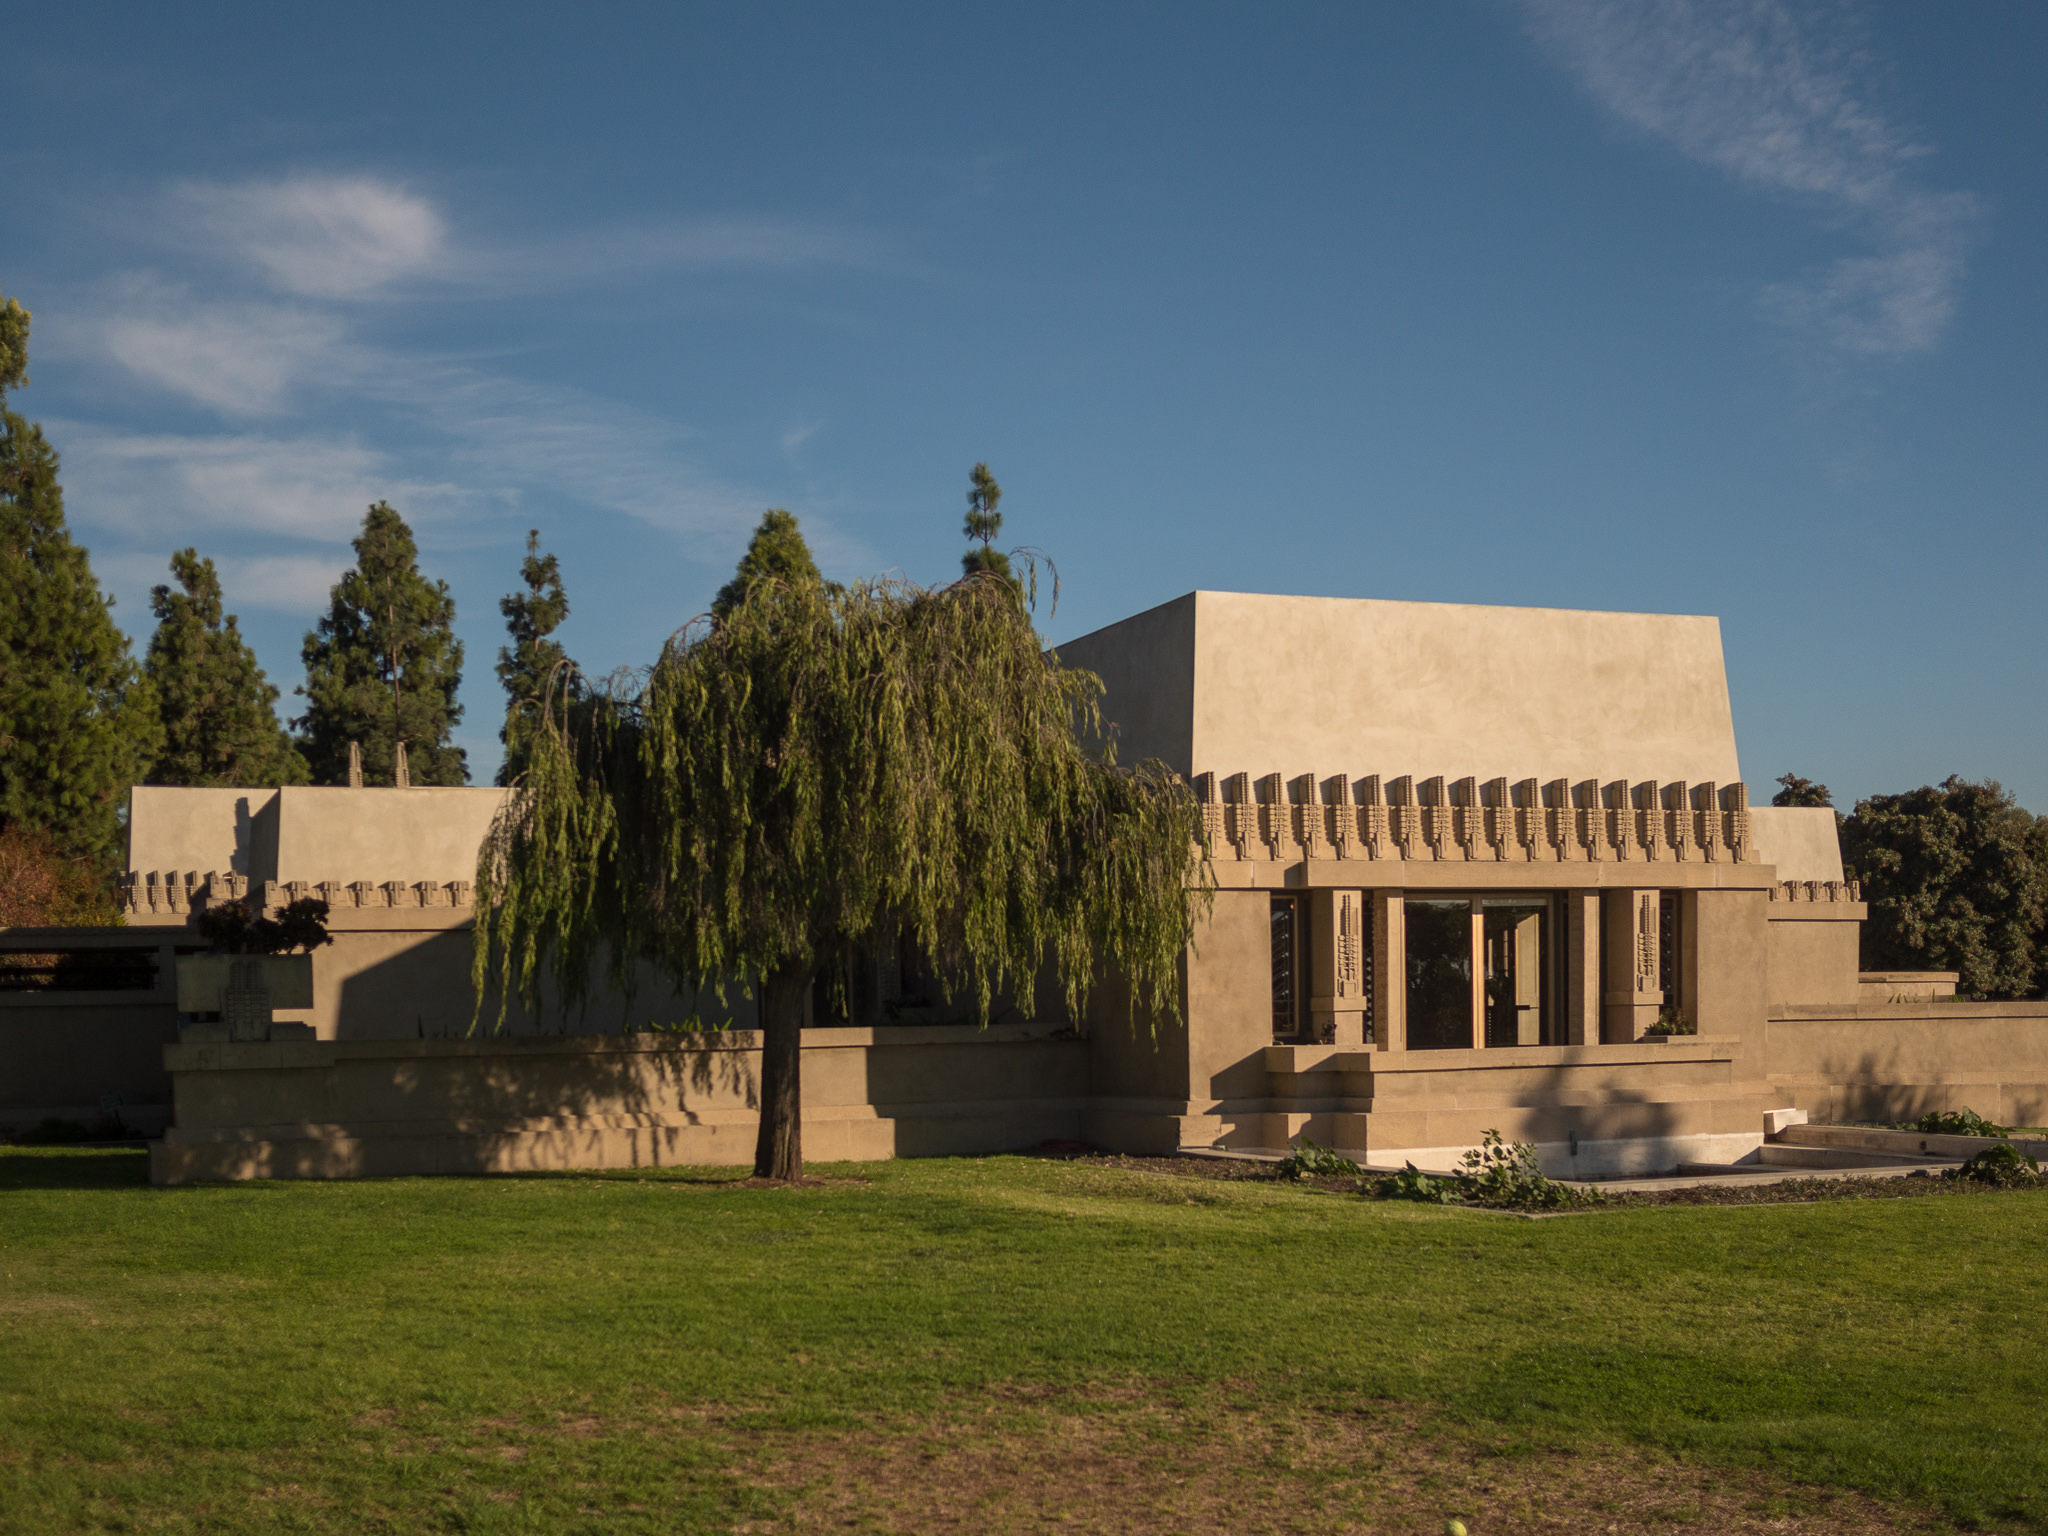 The Hollyhock House in all its original glory. So well-preserved and maintained that it will soon be declared as a UNESCO-designated site. Designed by renowned architect, Frank Lloyd Wright.